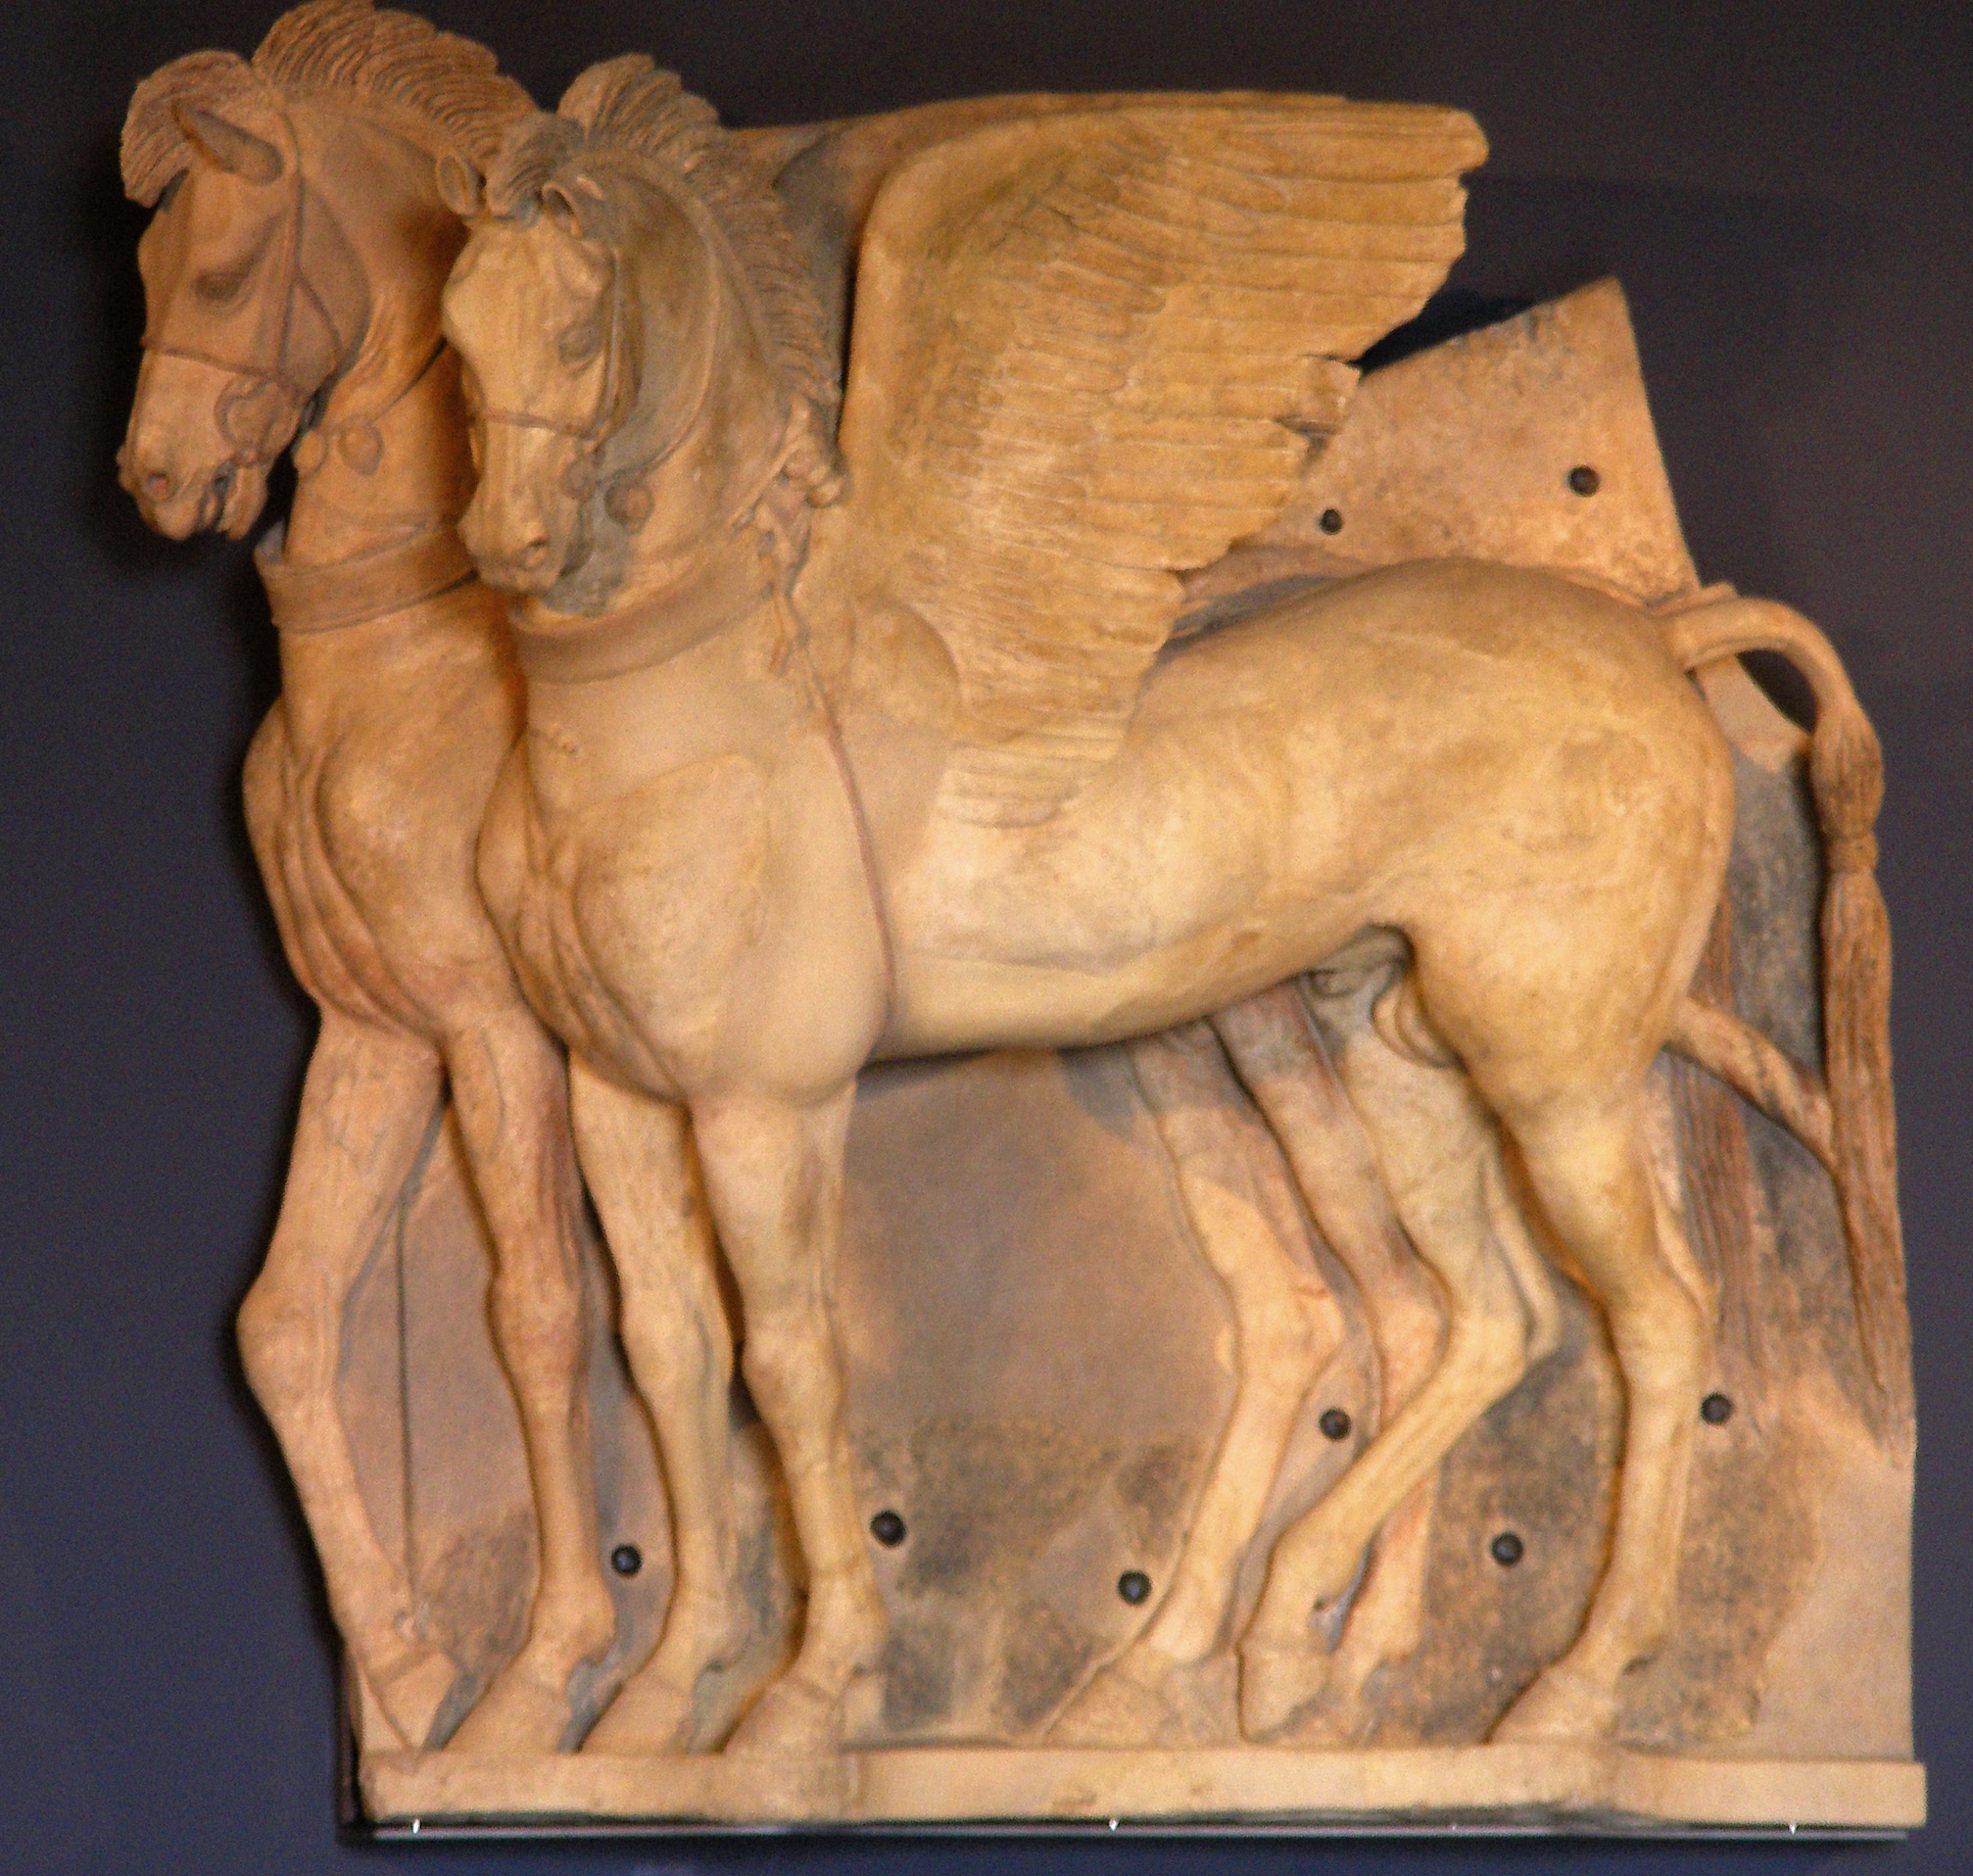 http://upload.wikimedia.org/wikipedia/commons/3/36/Etruscan_Horses_Tarquinia.jpg